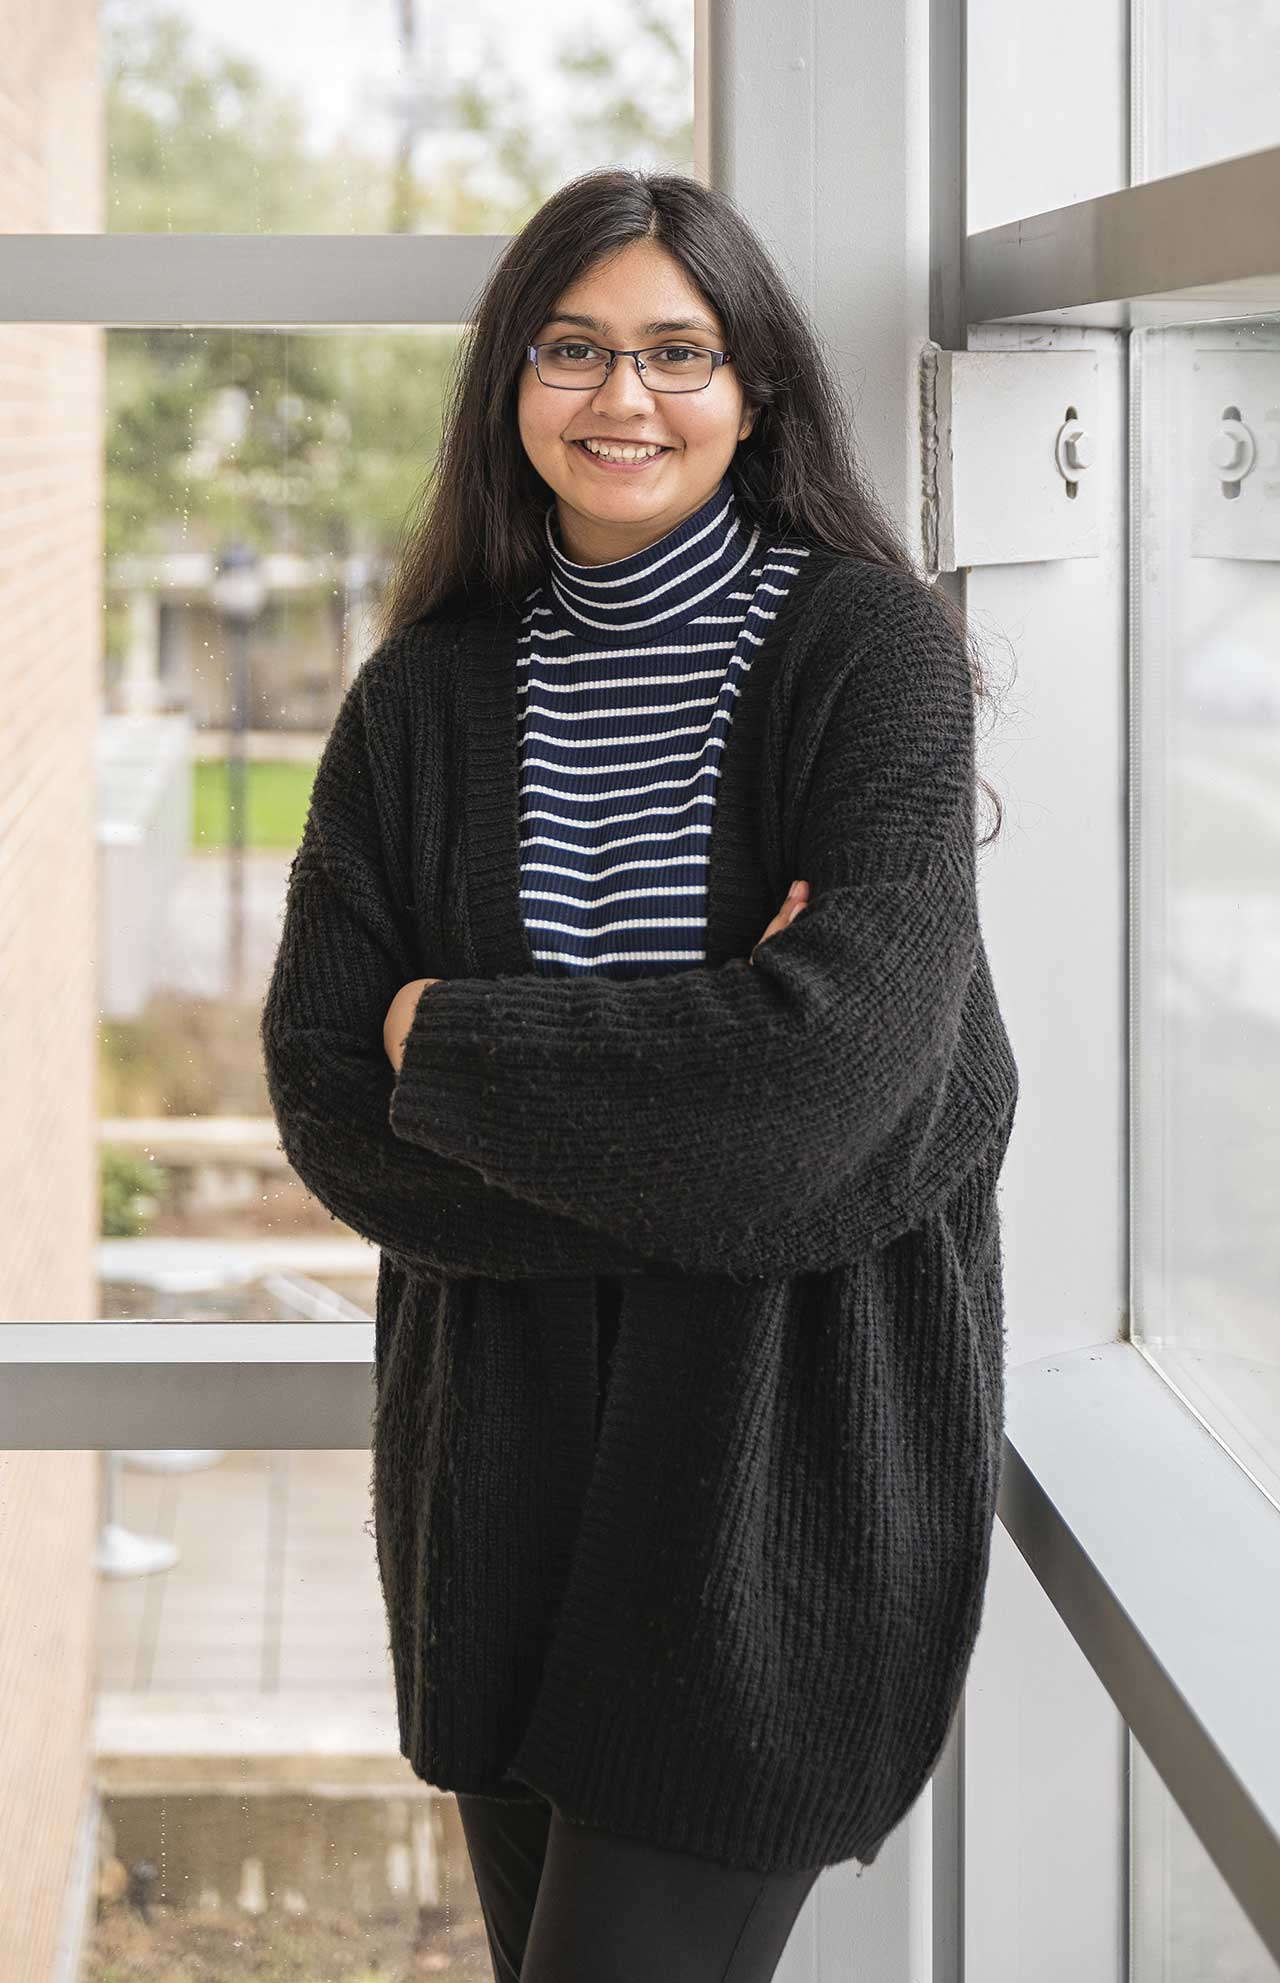 UTA Computer Science and Engineering student Rajvi Tiwari